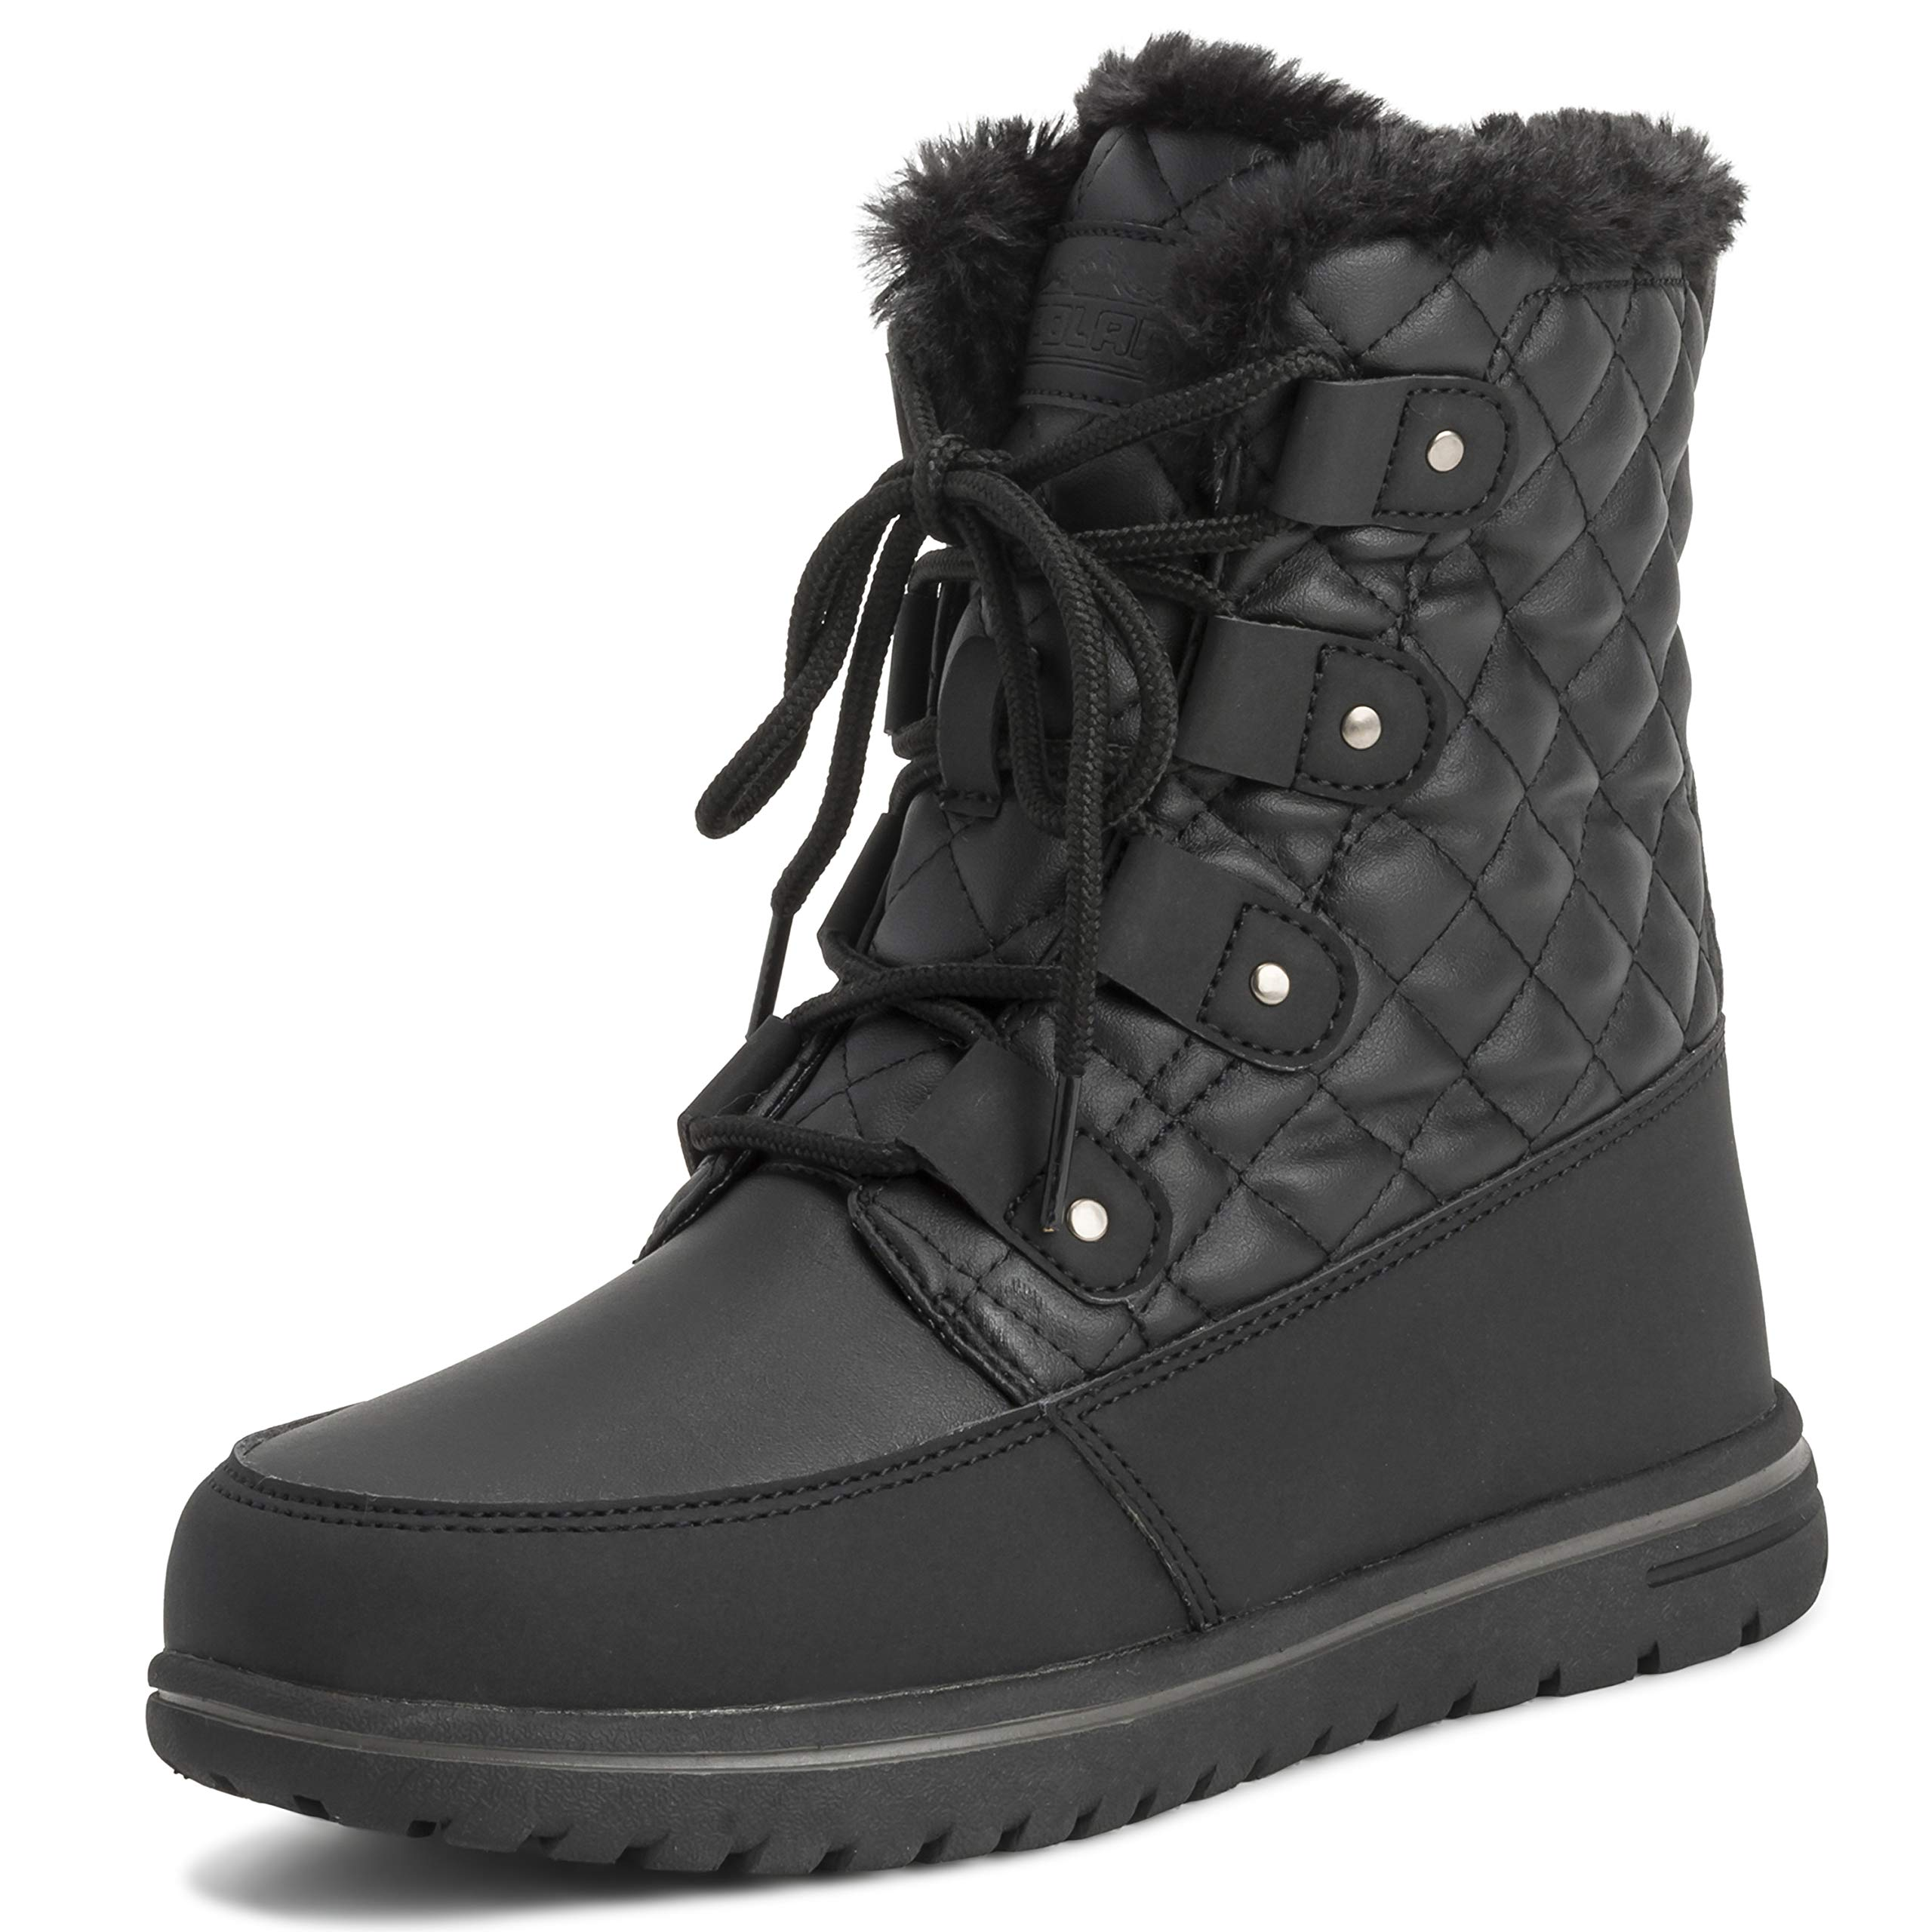 Polar Womens Quilted Short Faux Fur Snow Waterproof Winter Durable Warm Boots - 9 - BLK40 AYC0523